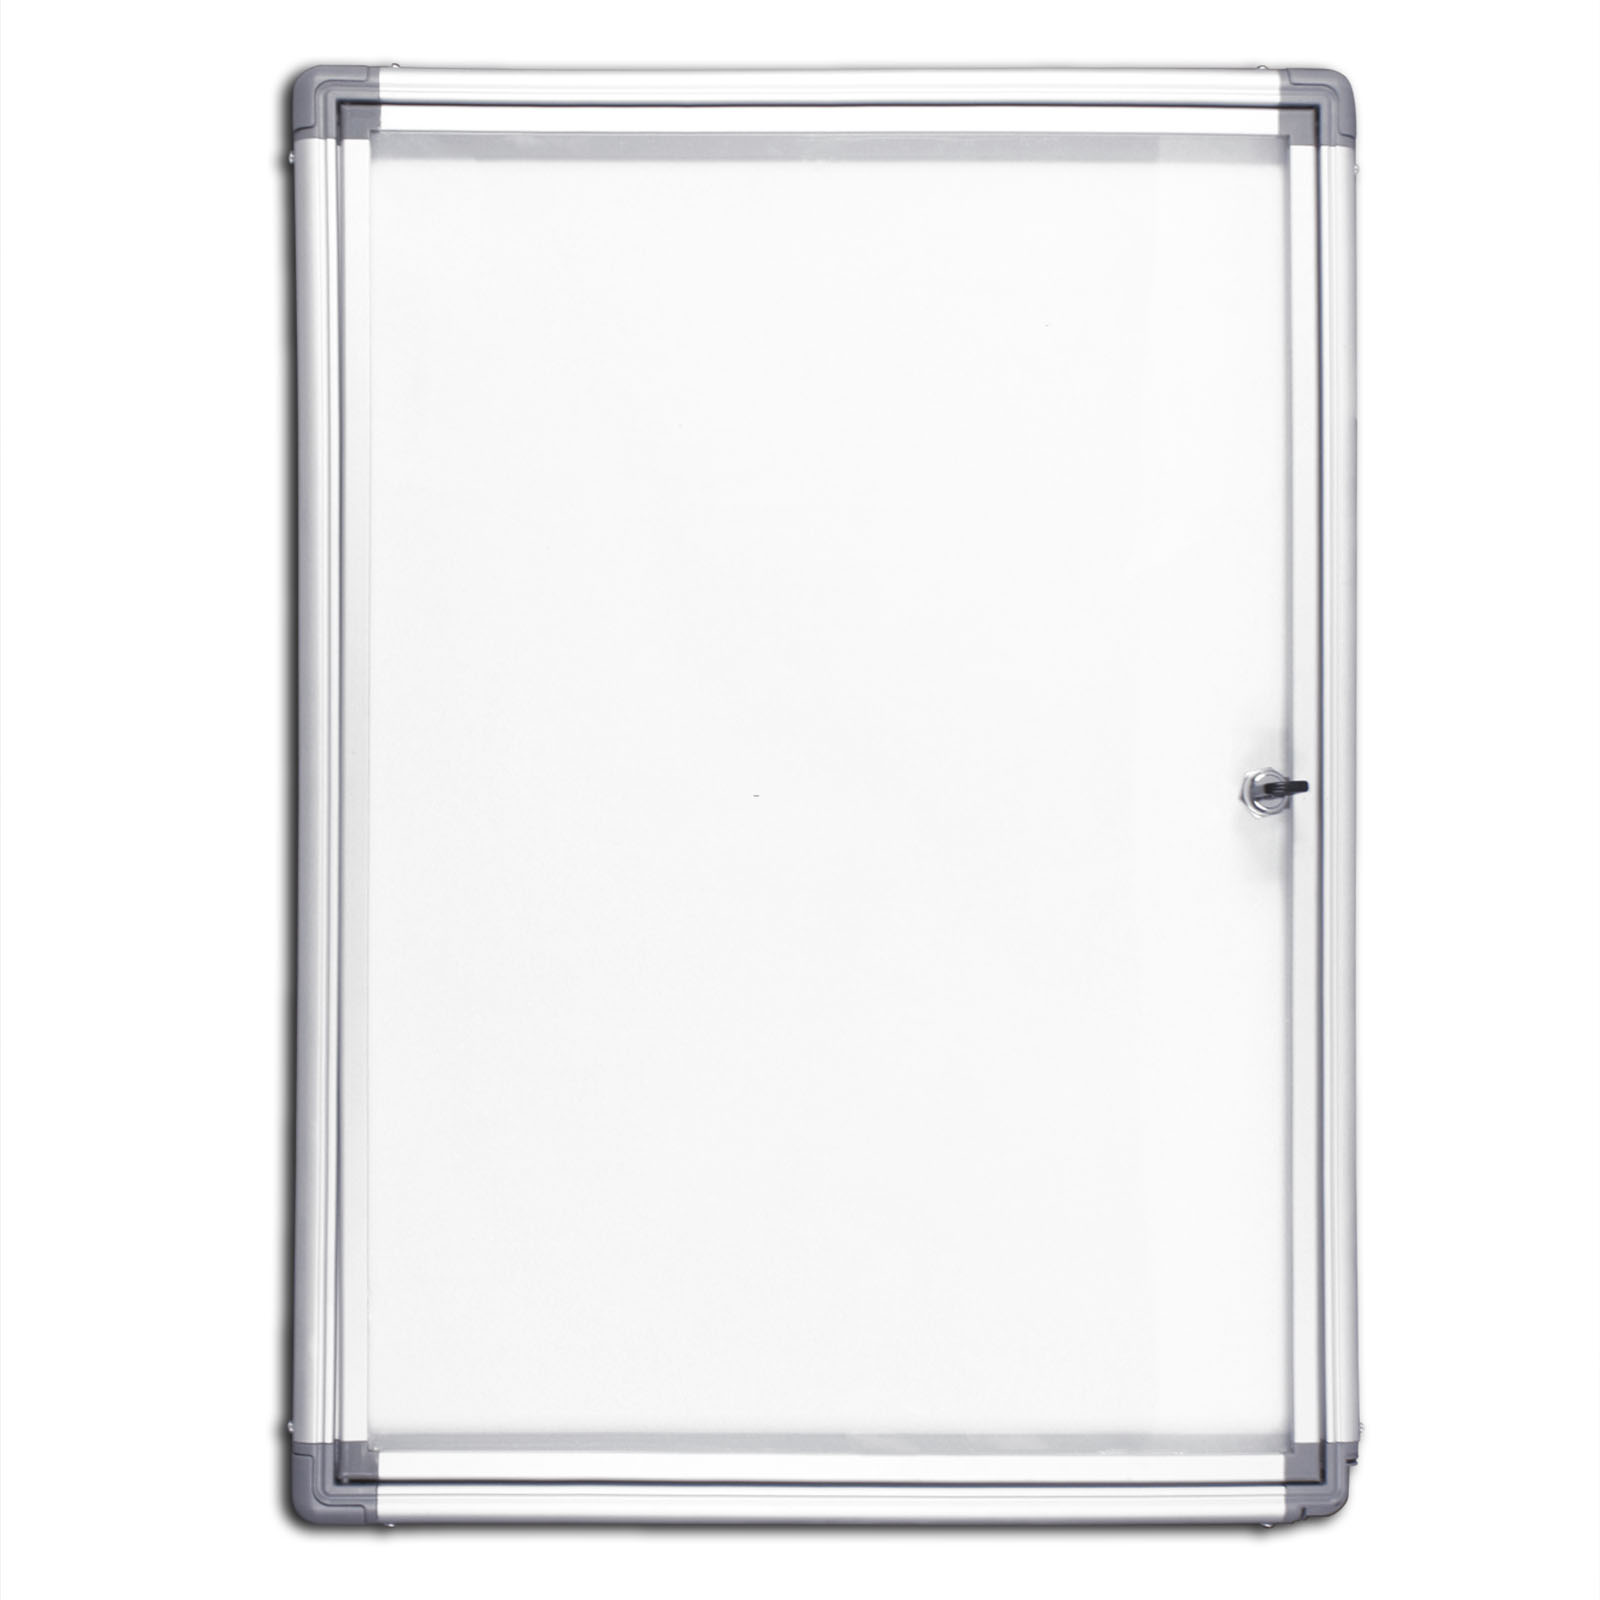 schaukasten flachschaukasten infokasten vitrine mit whiteboard magnettafel innen ebay. Black Bedroom Furniture Sets. Home Design Ideas